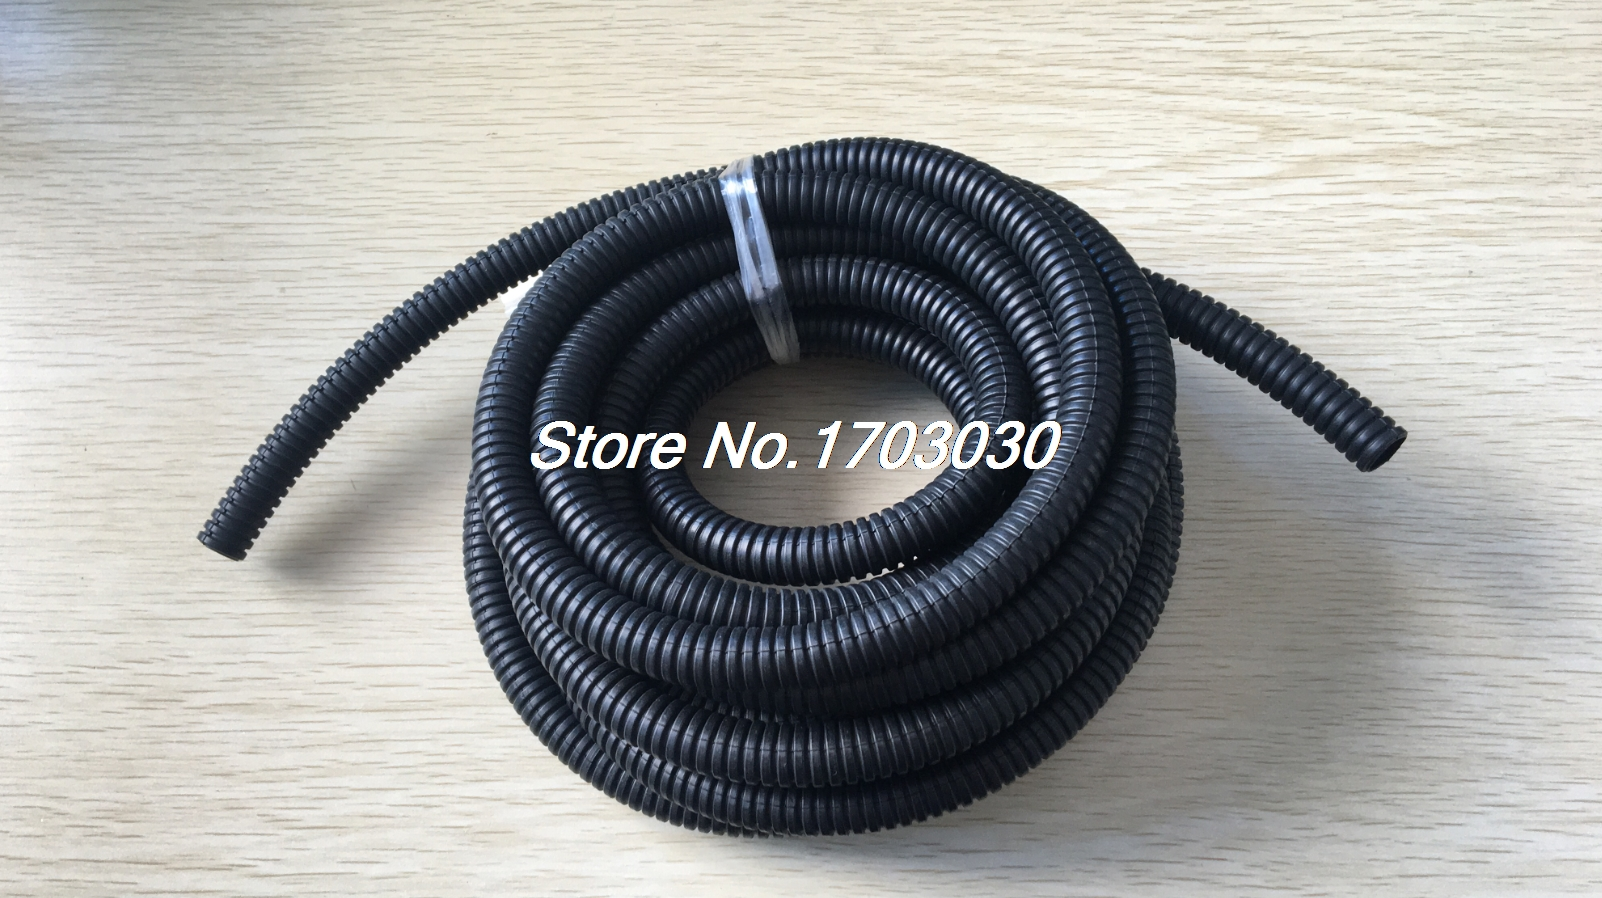 Black Plastic 13mm x 10mm Corrugated Wire Tubing Convoluted Hose Tube 5M